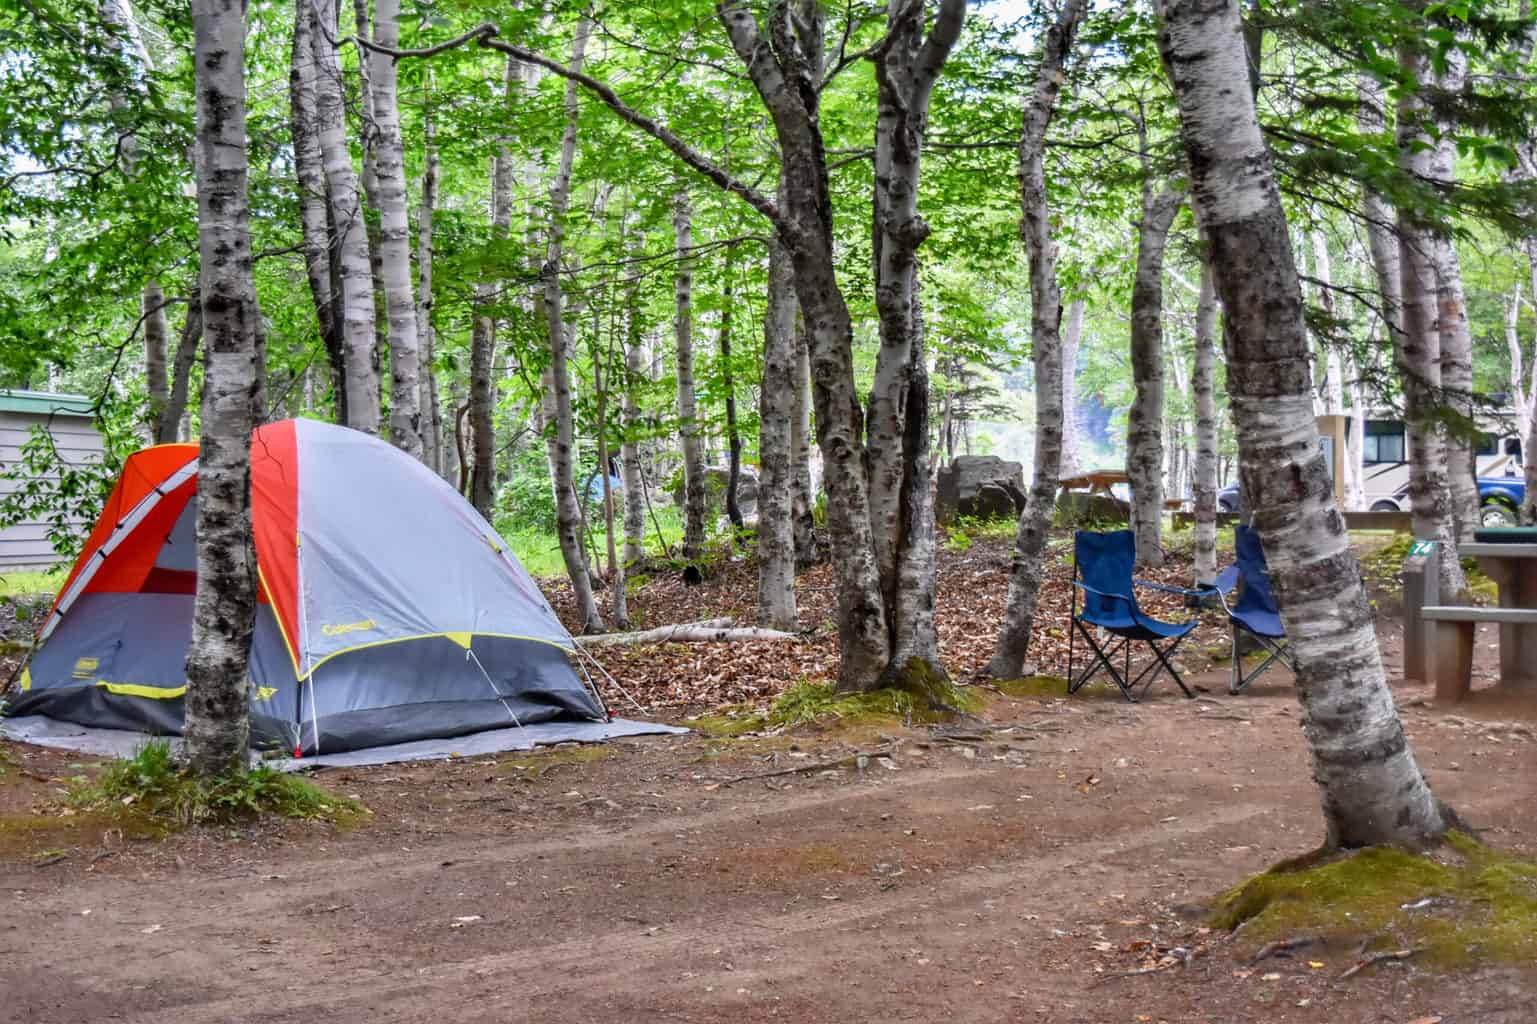 A tent in Cheticamp Campground in Cape Breton Highlands Naitonal Park.